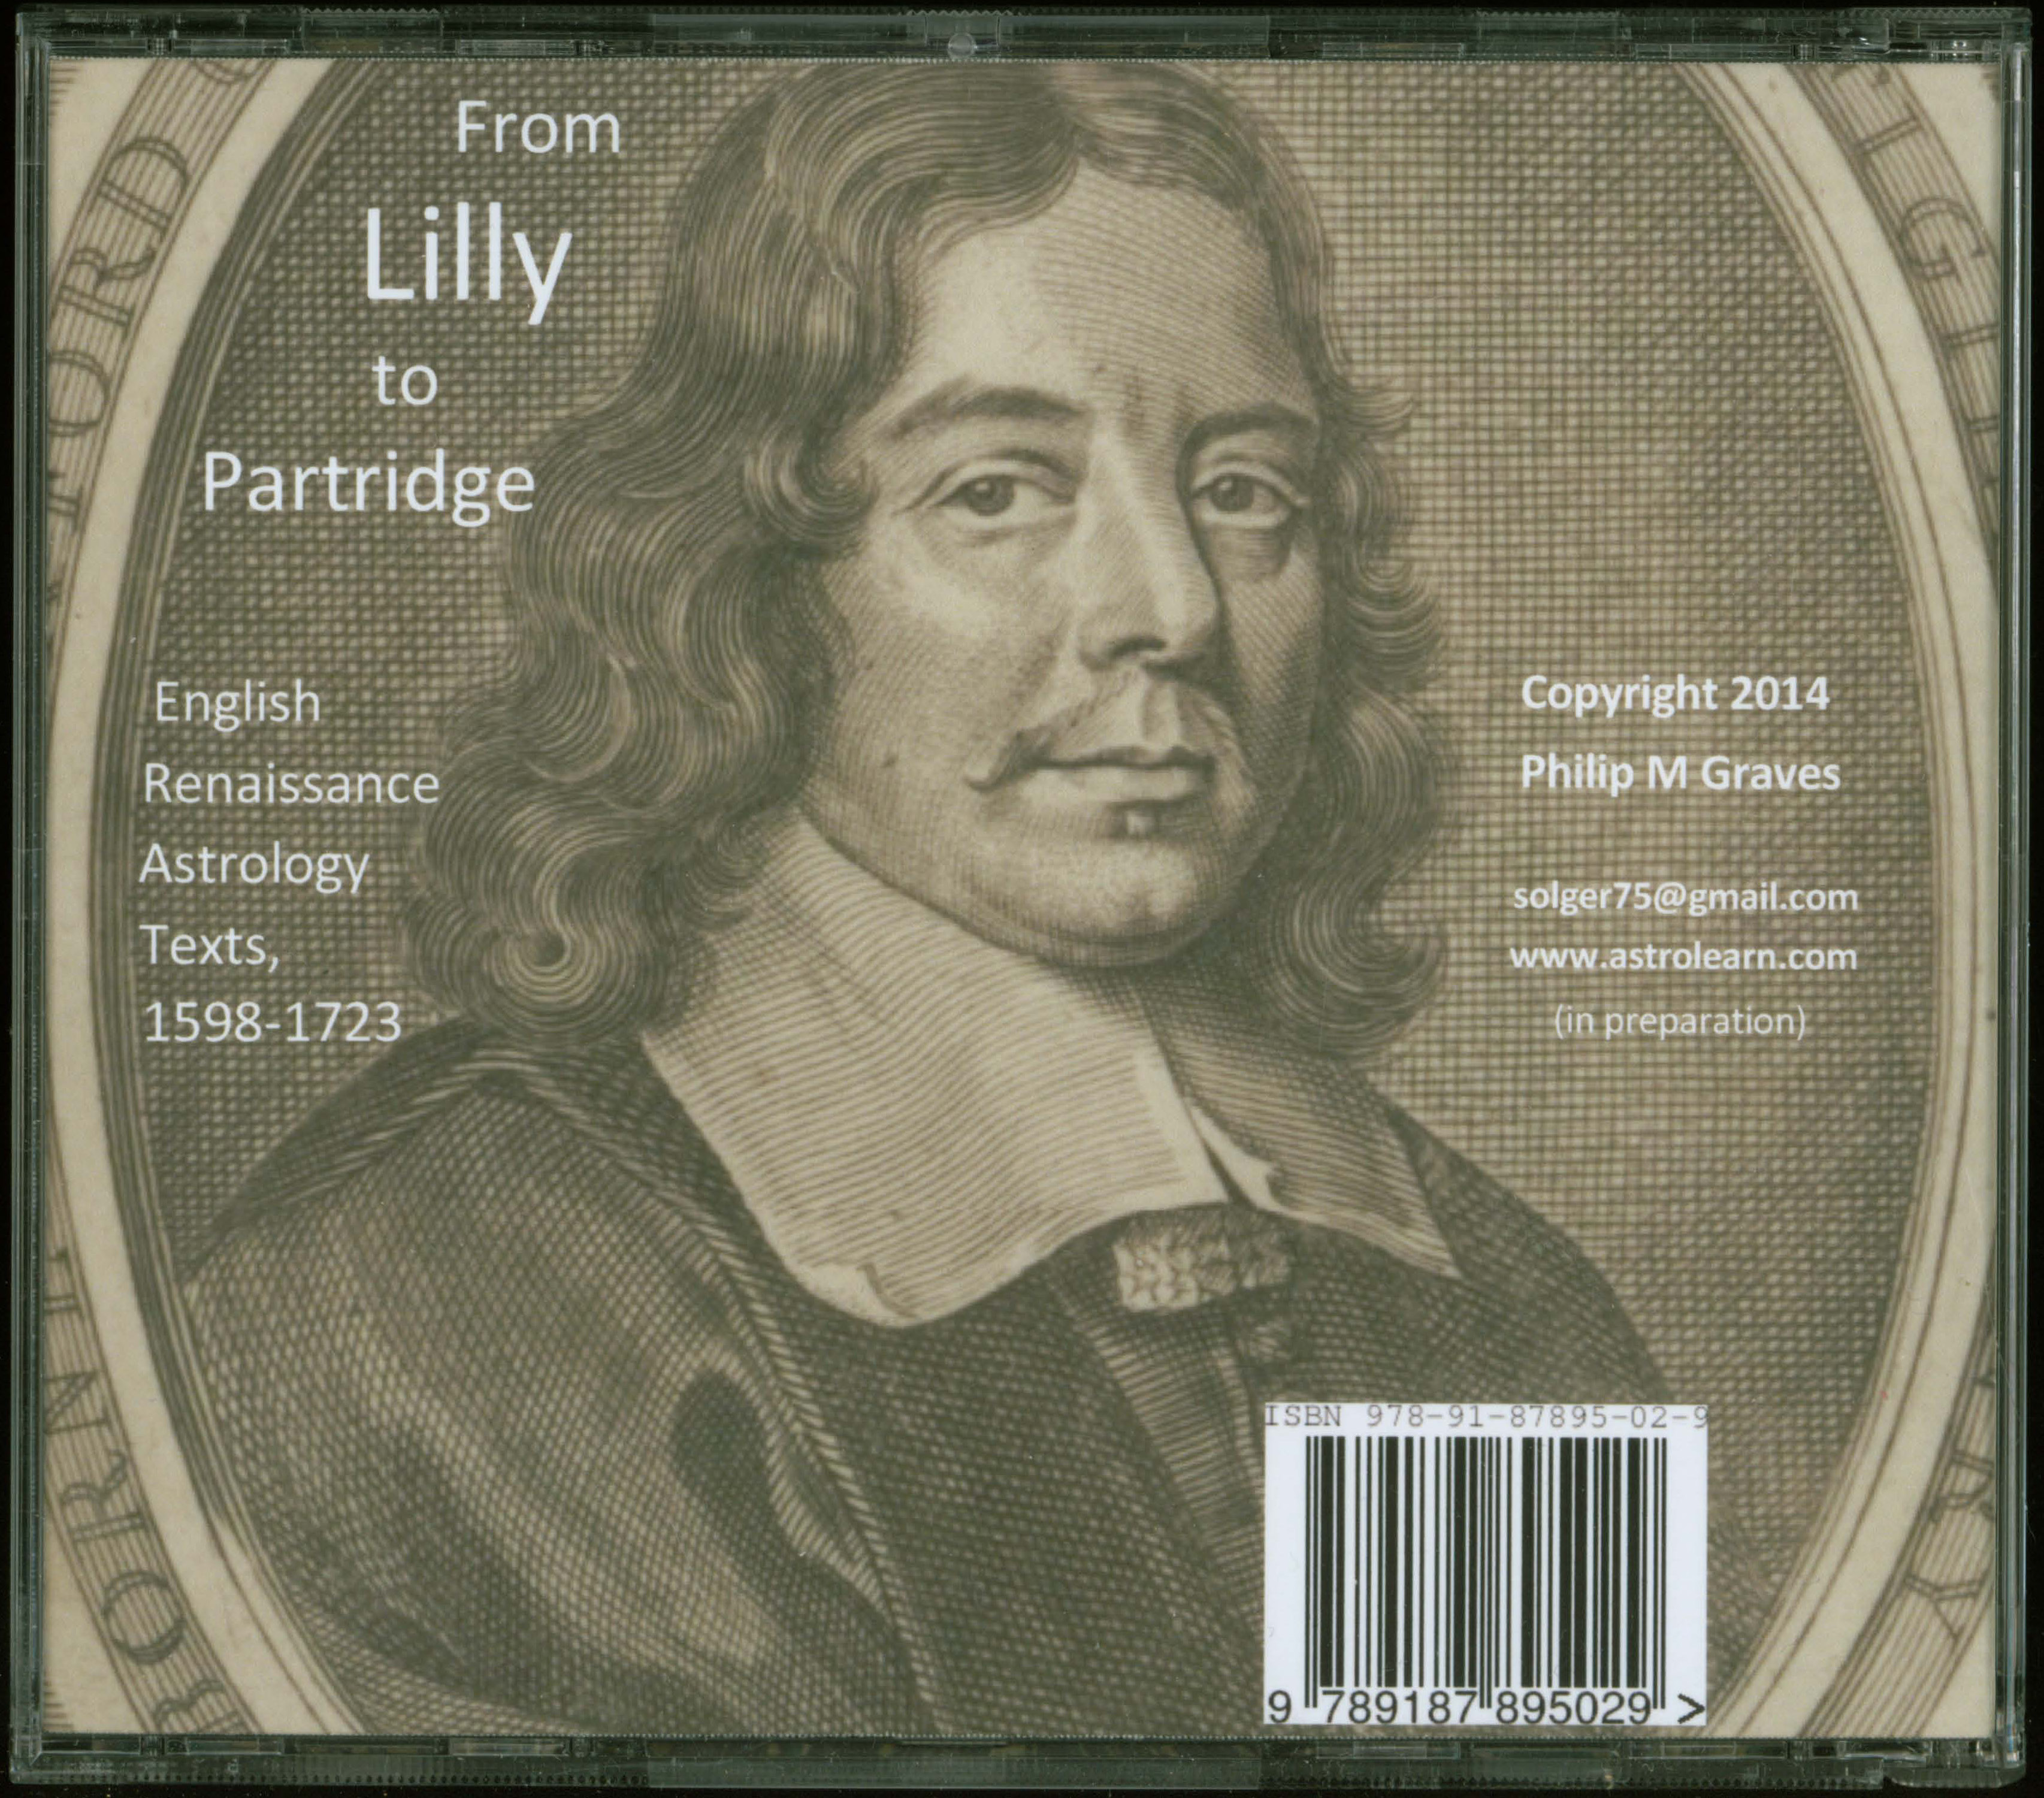 From Lilly to Partridge: English Renaissance Astrology Texts DVD, Rear Cover